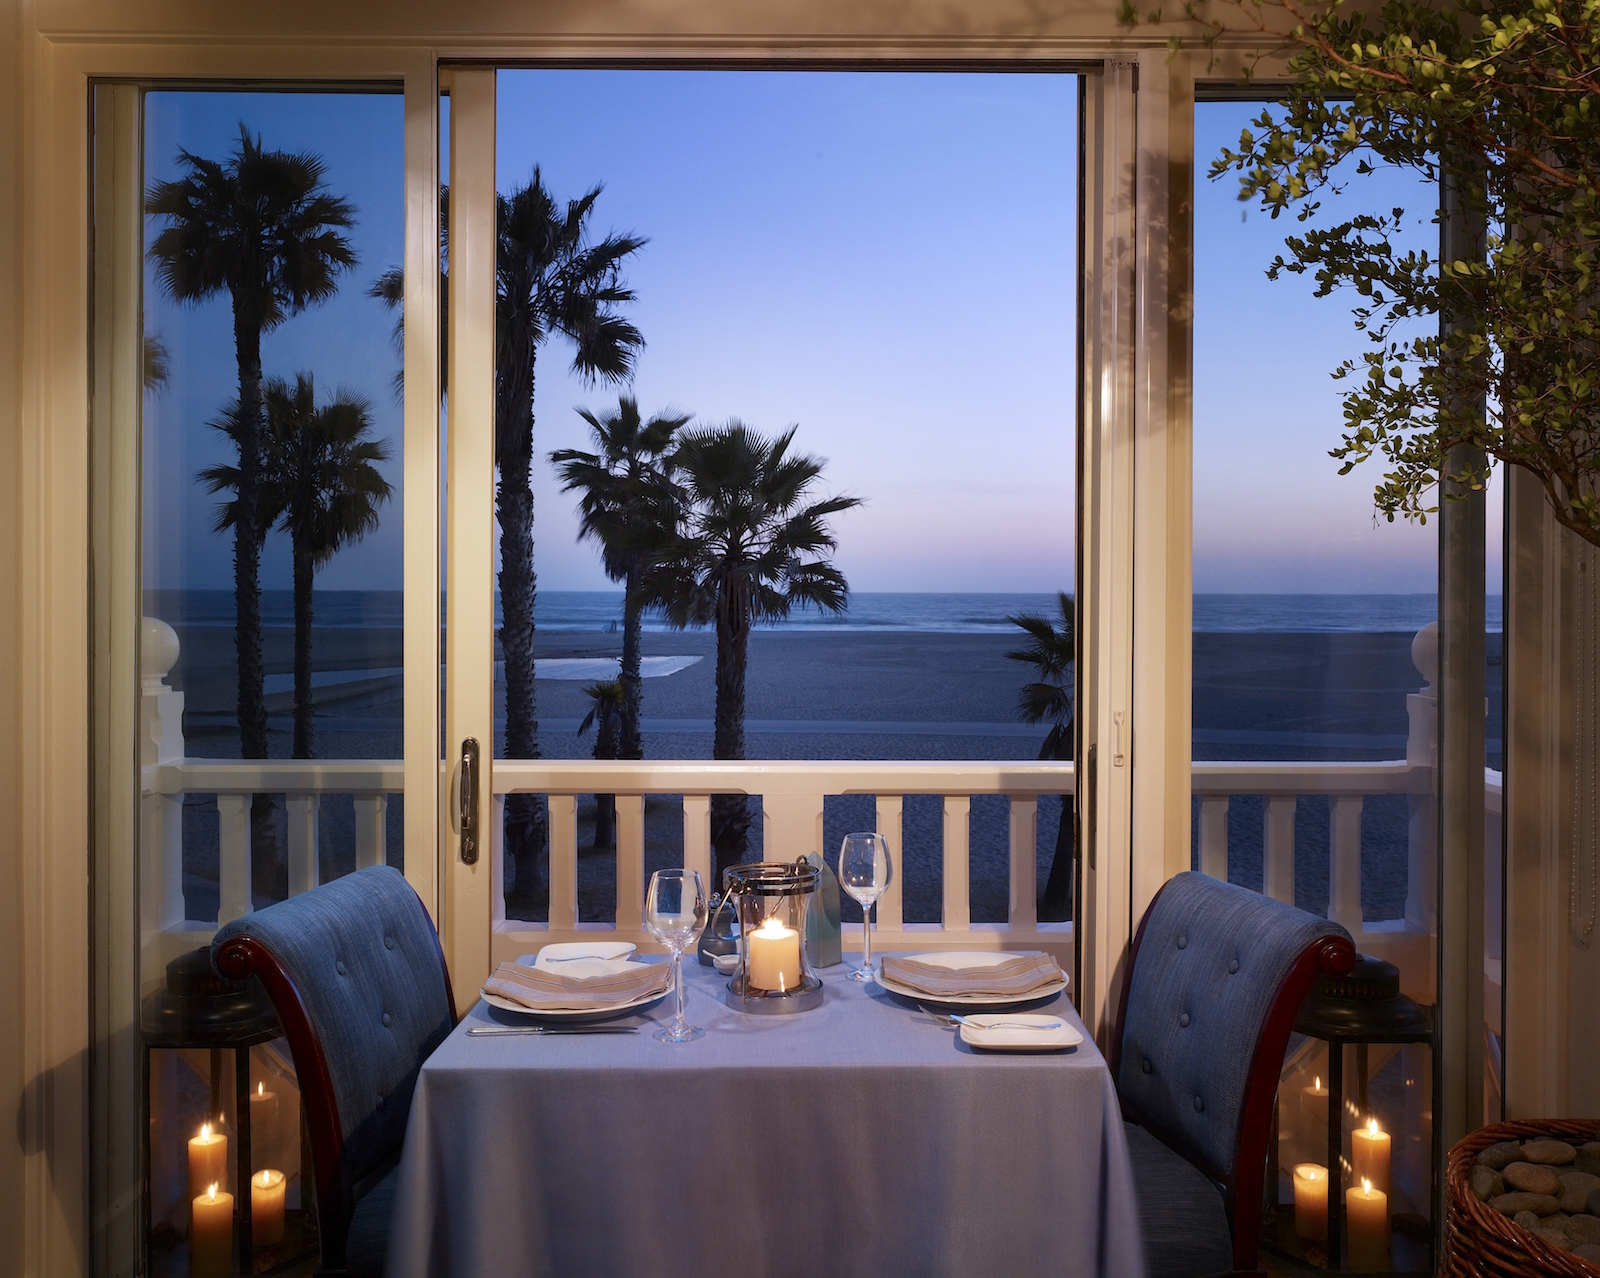 santa monica hotel luxury beach hotel the iconic shutters on